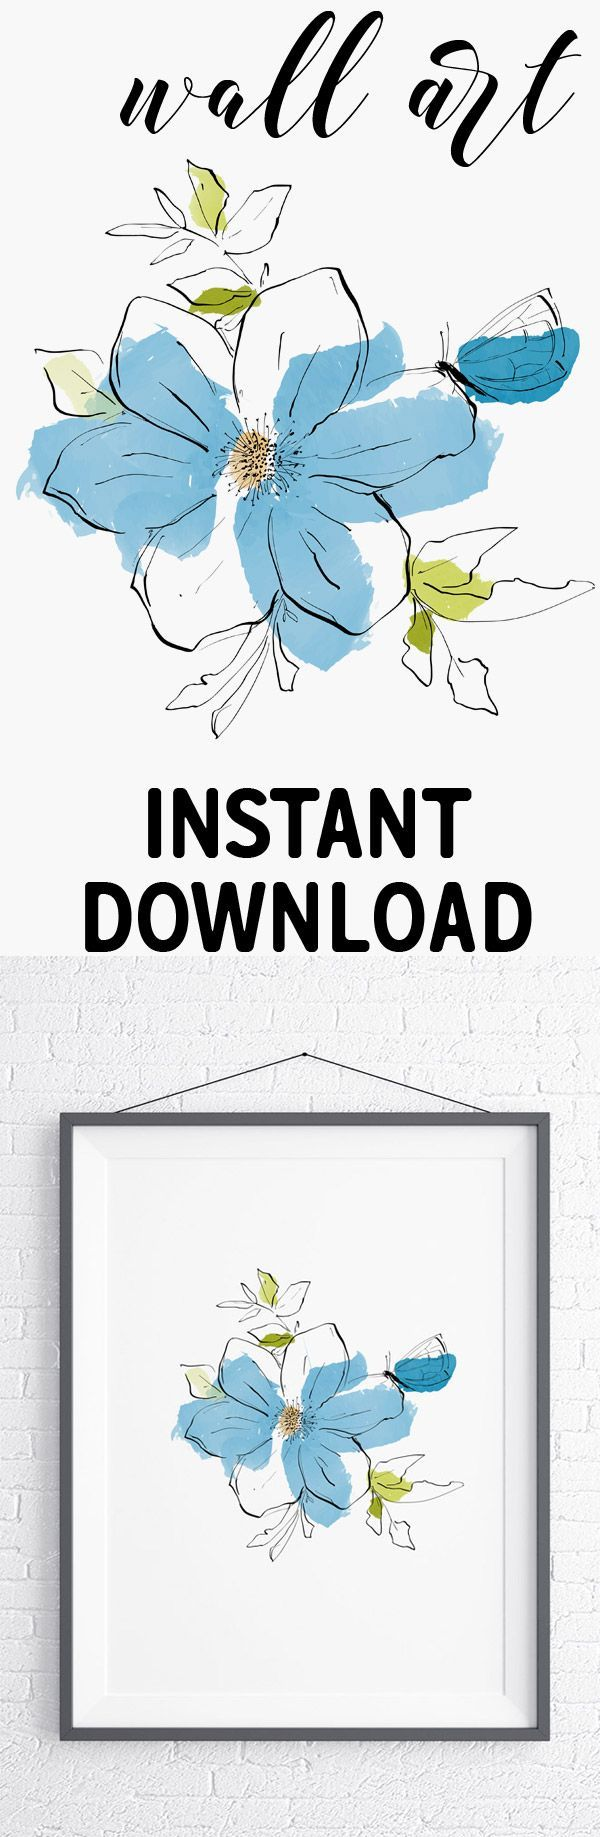 Printable botanical decor, butterfly art. Minimalist drawing of a butterfly and ...